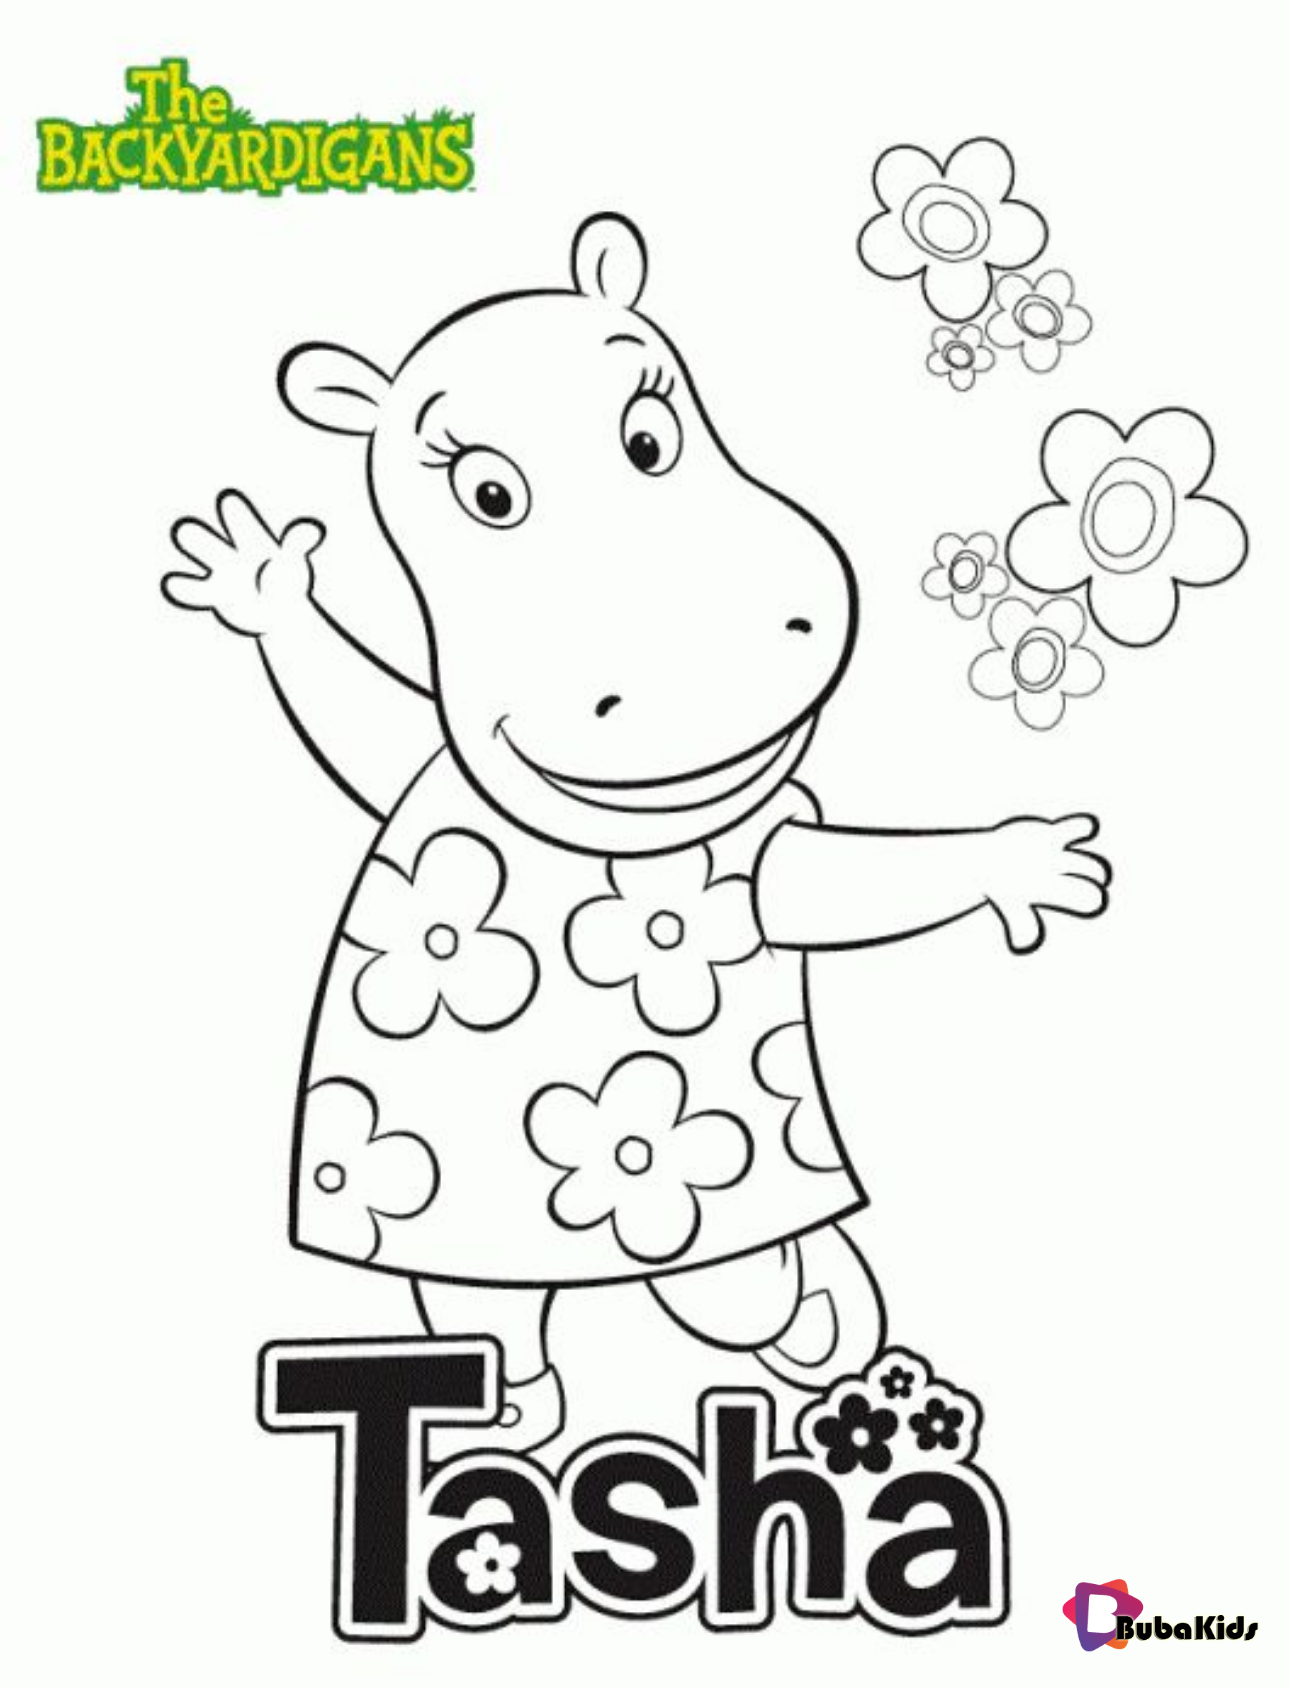 Backyardigans Coloring Pages - GetColoringPages.com | 1688x1289